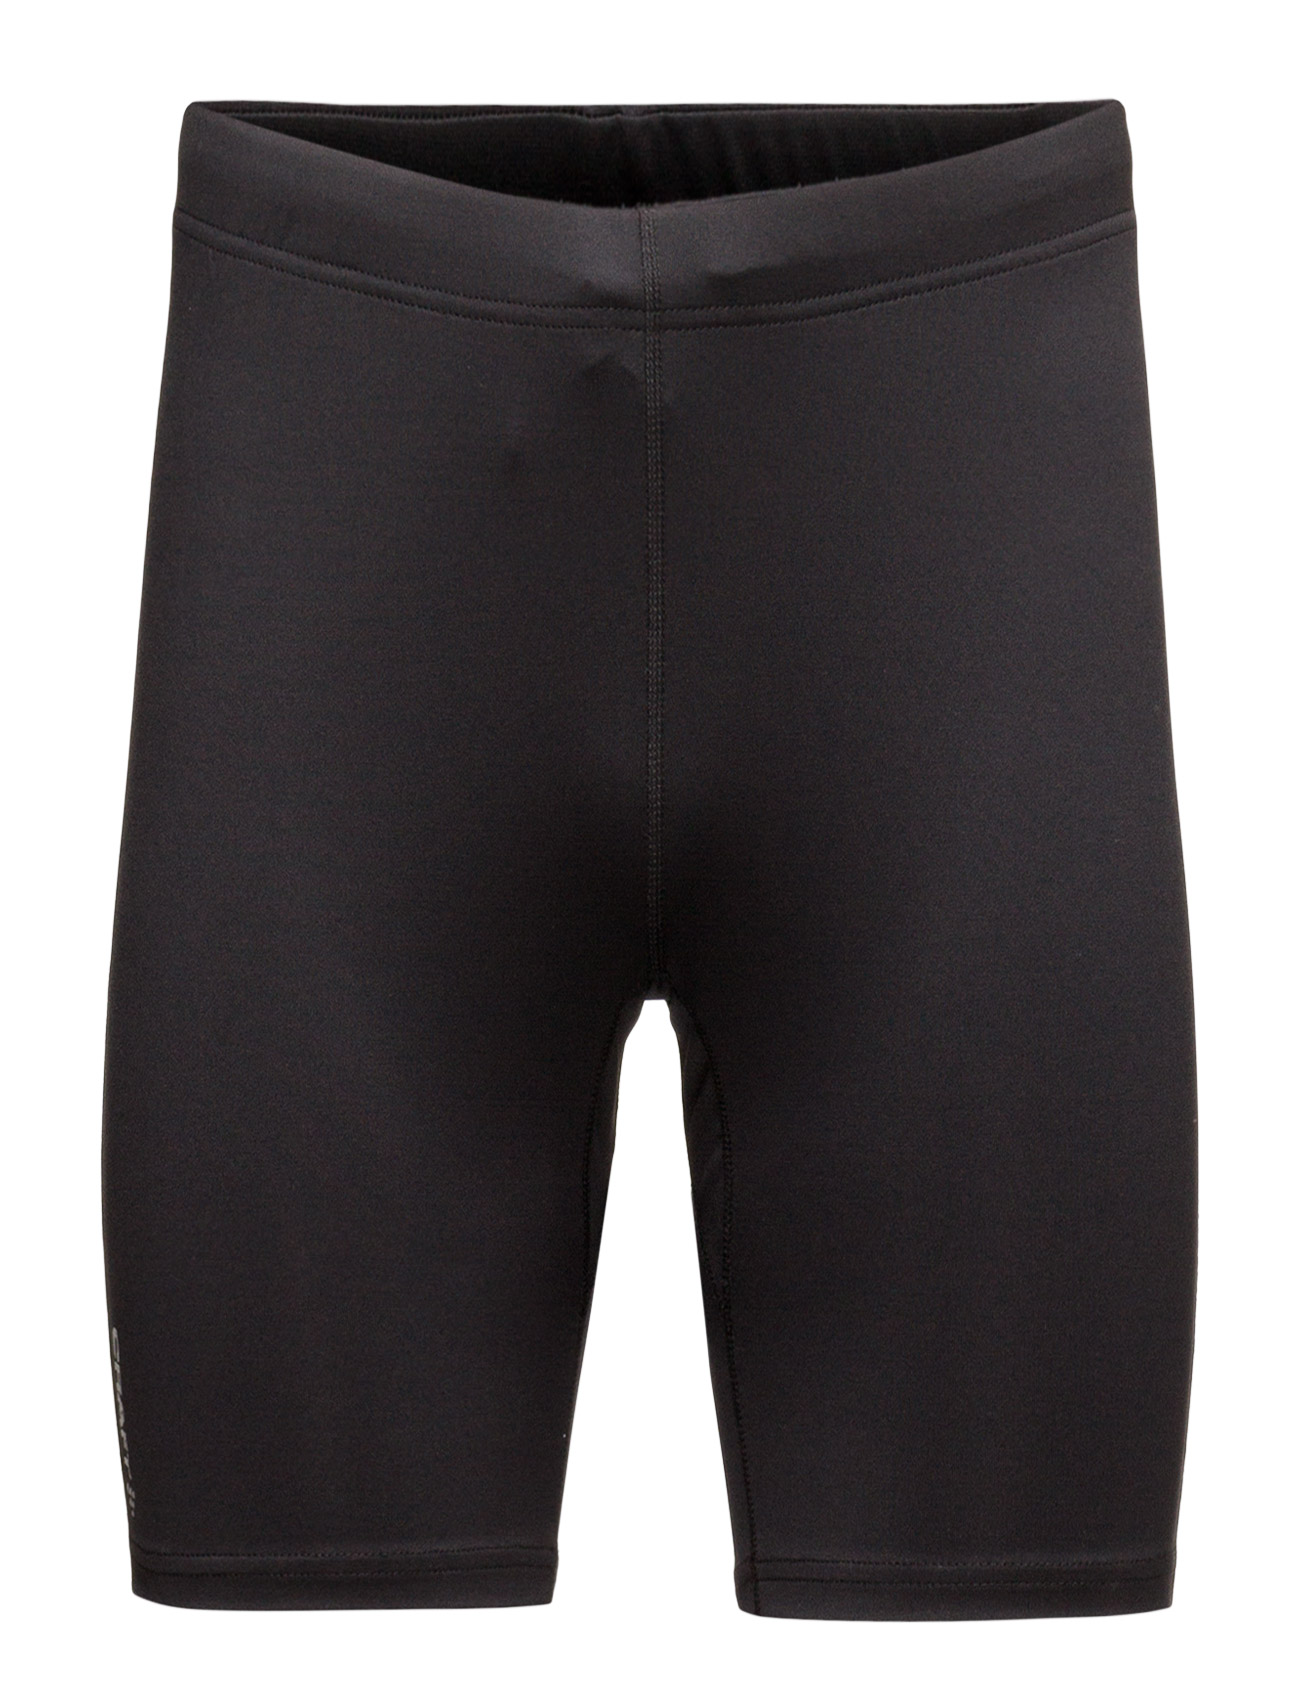 Image of Craft Prime Short Tights M Black (3158627409)